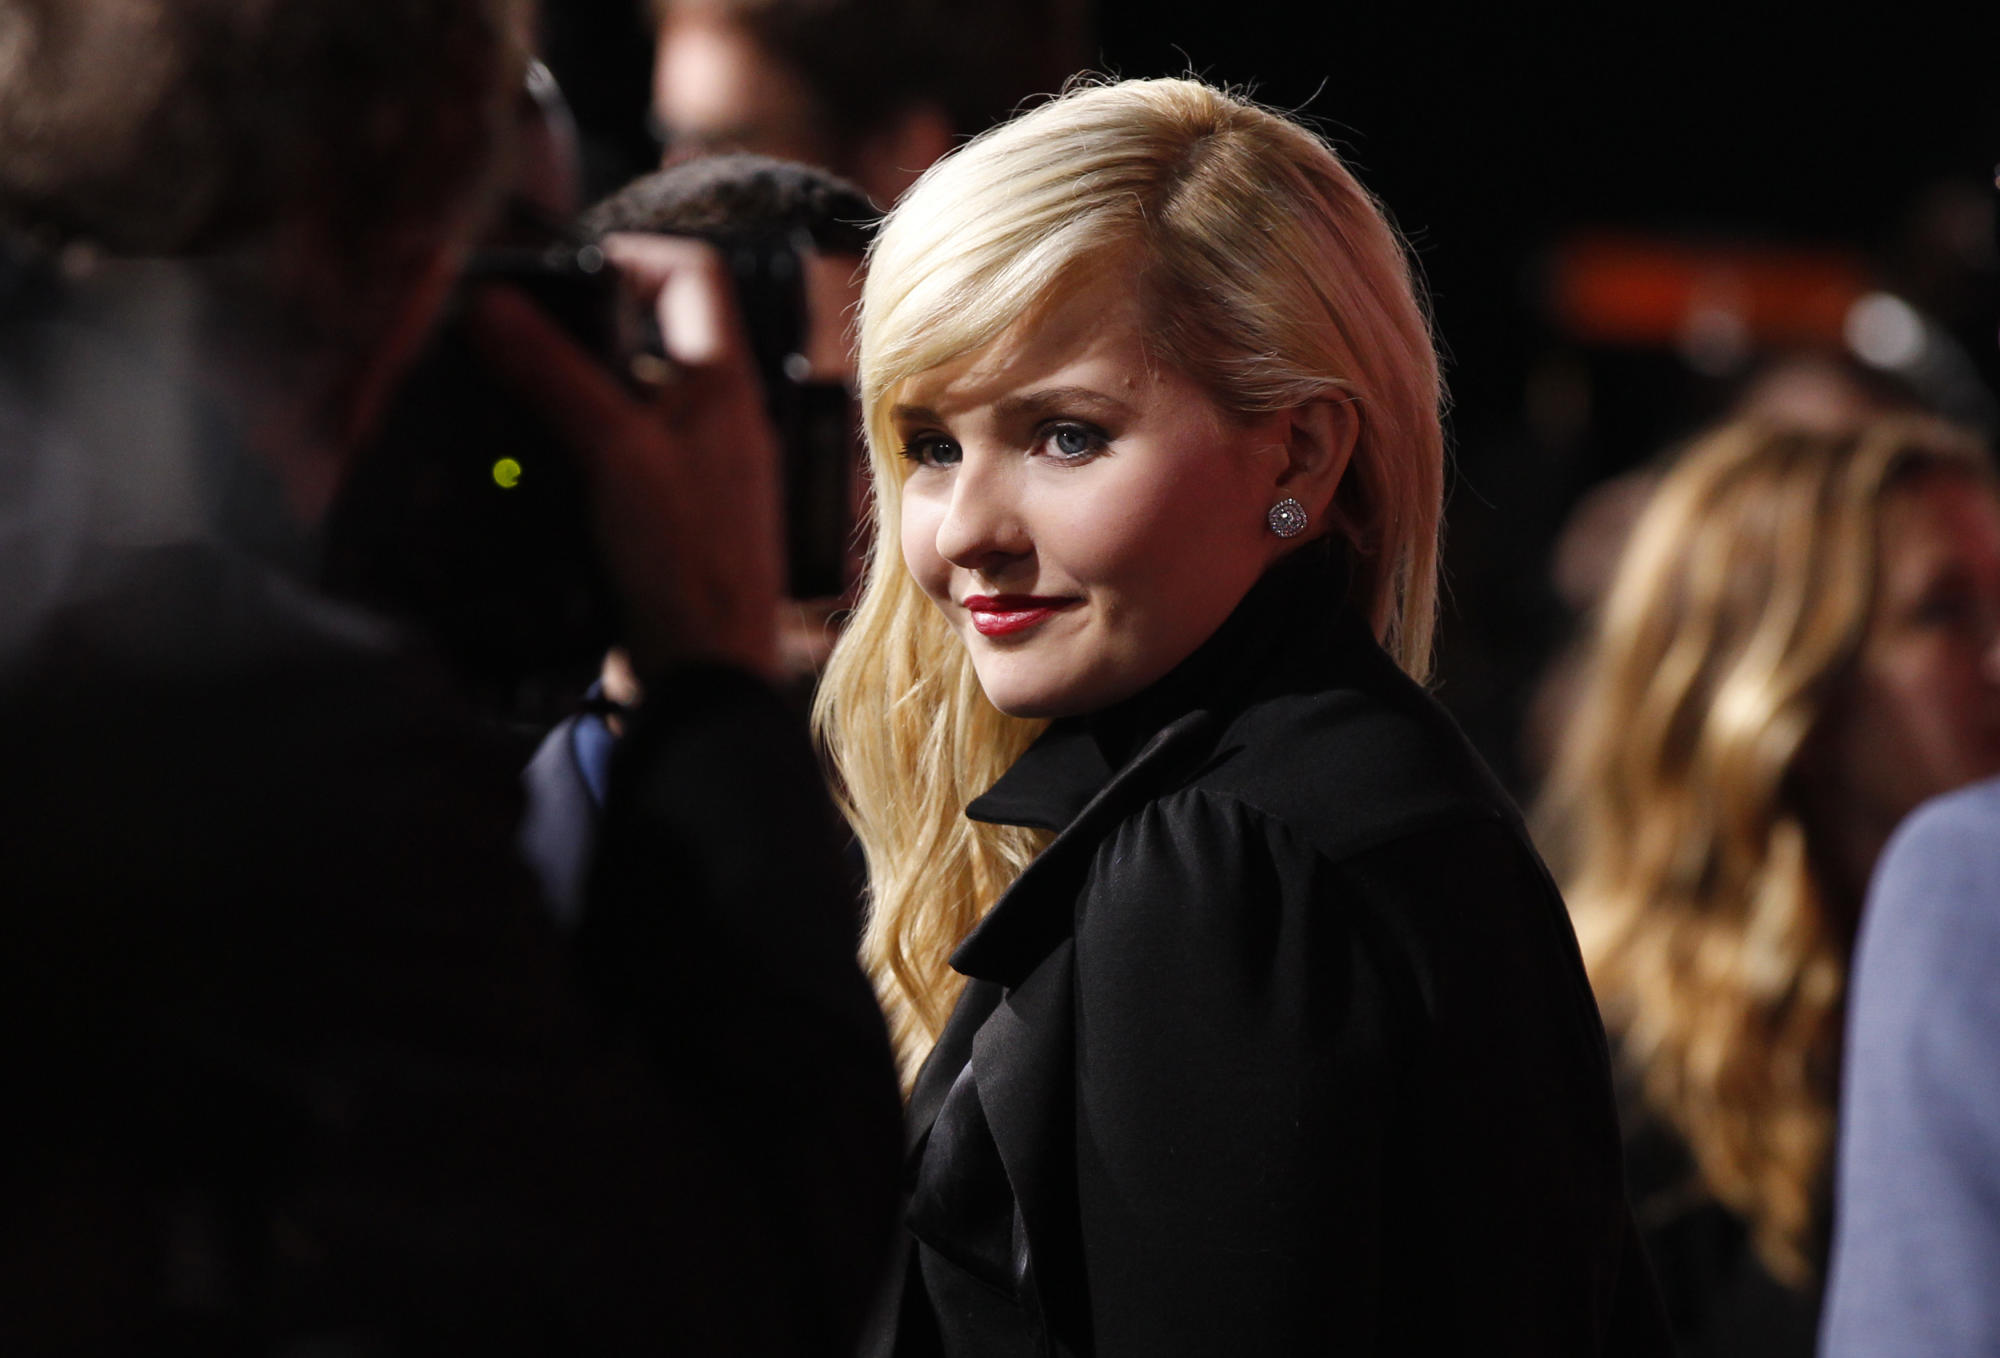 Abigail Breslin reveals 'shock' over death of her father: 'It was COVID-19 that cut my sweet daddy's life too short'